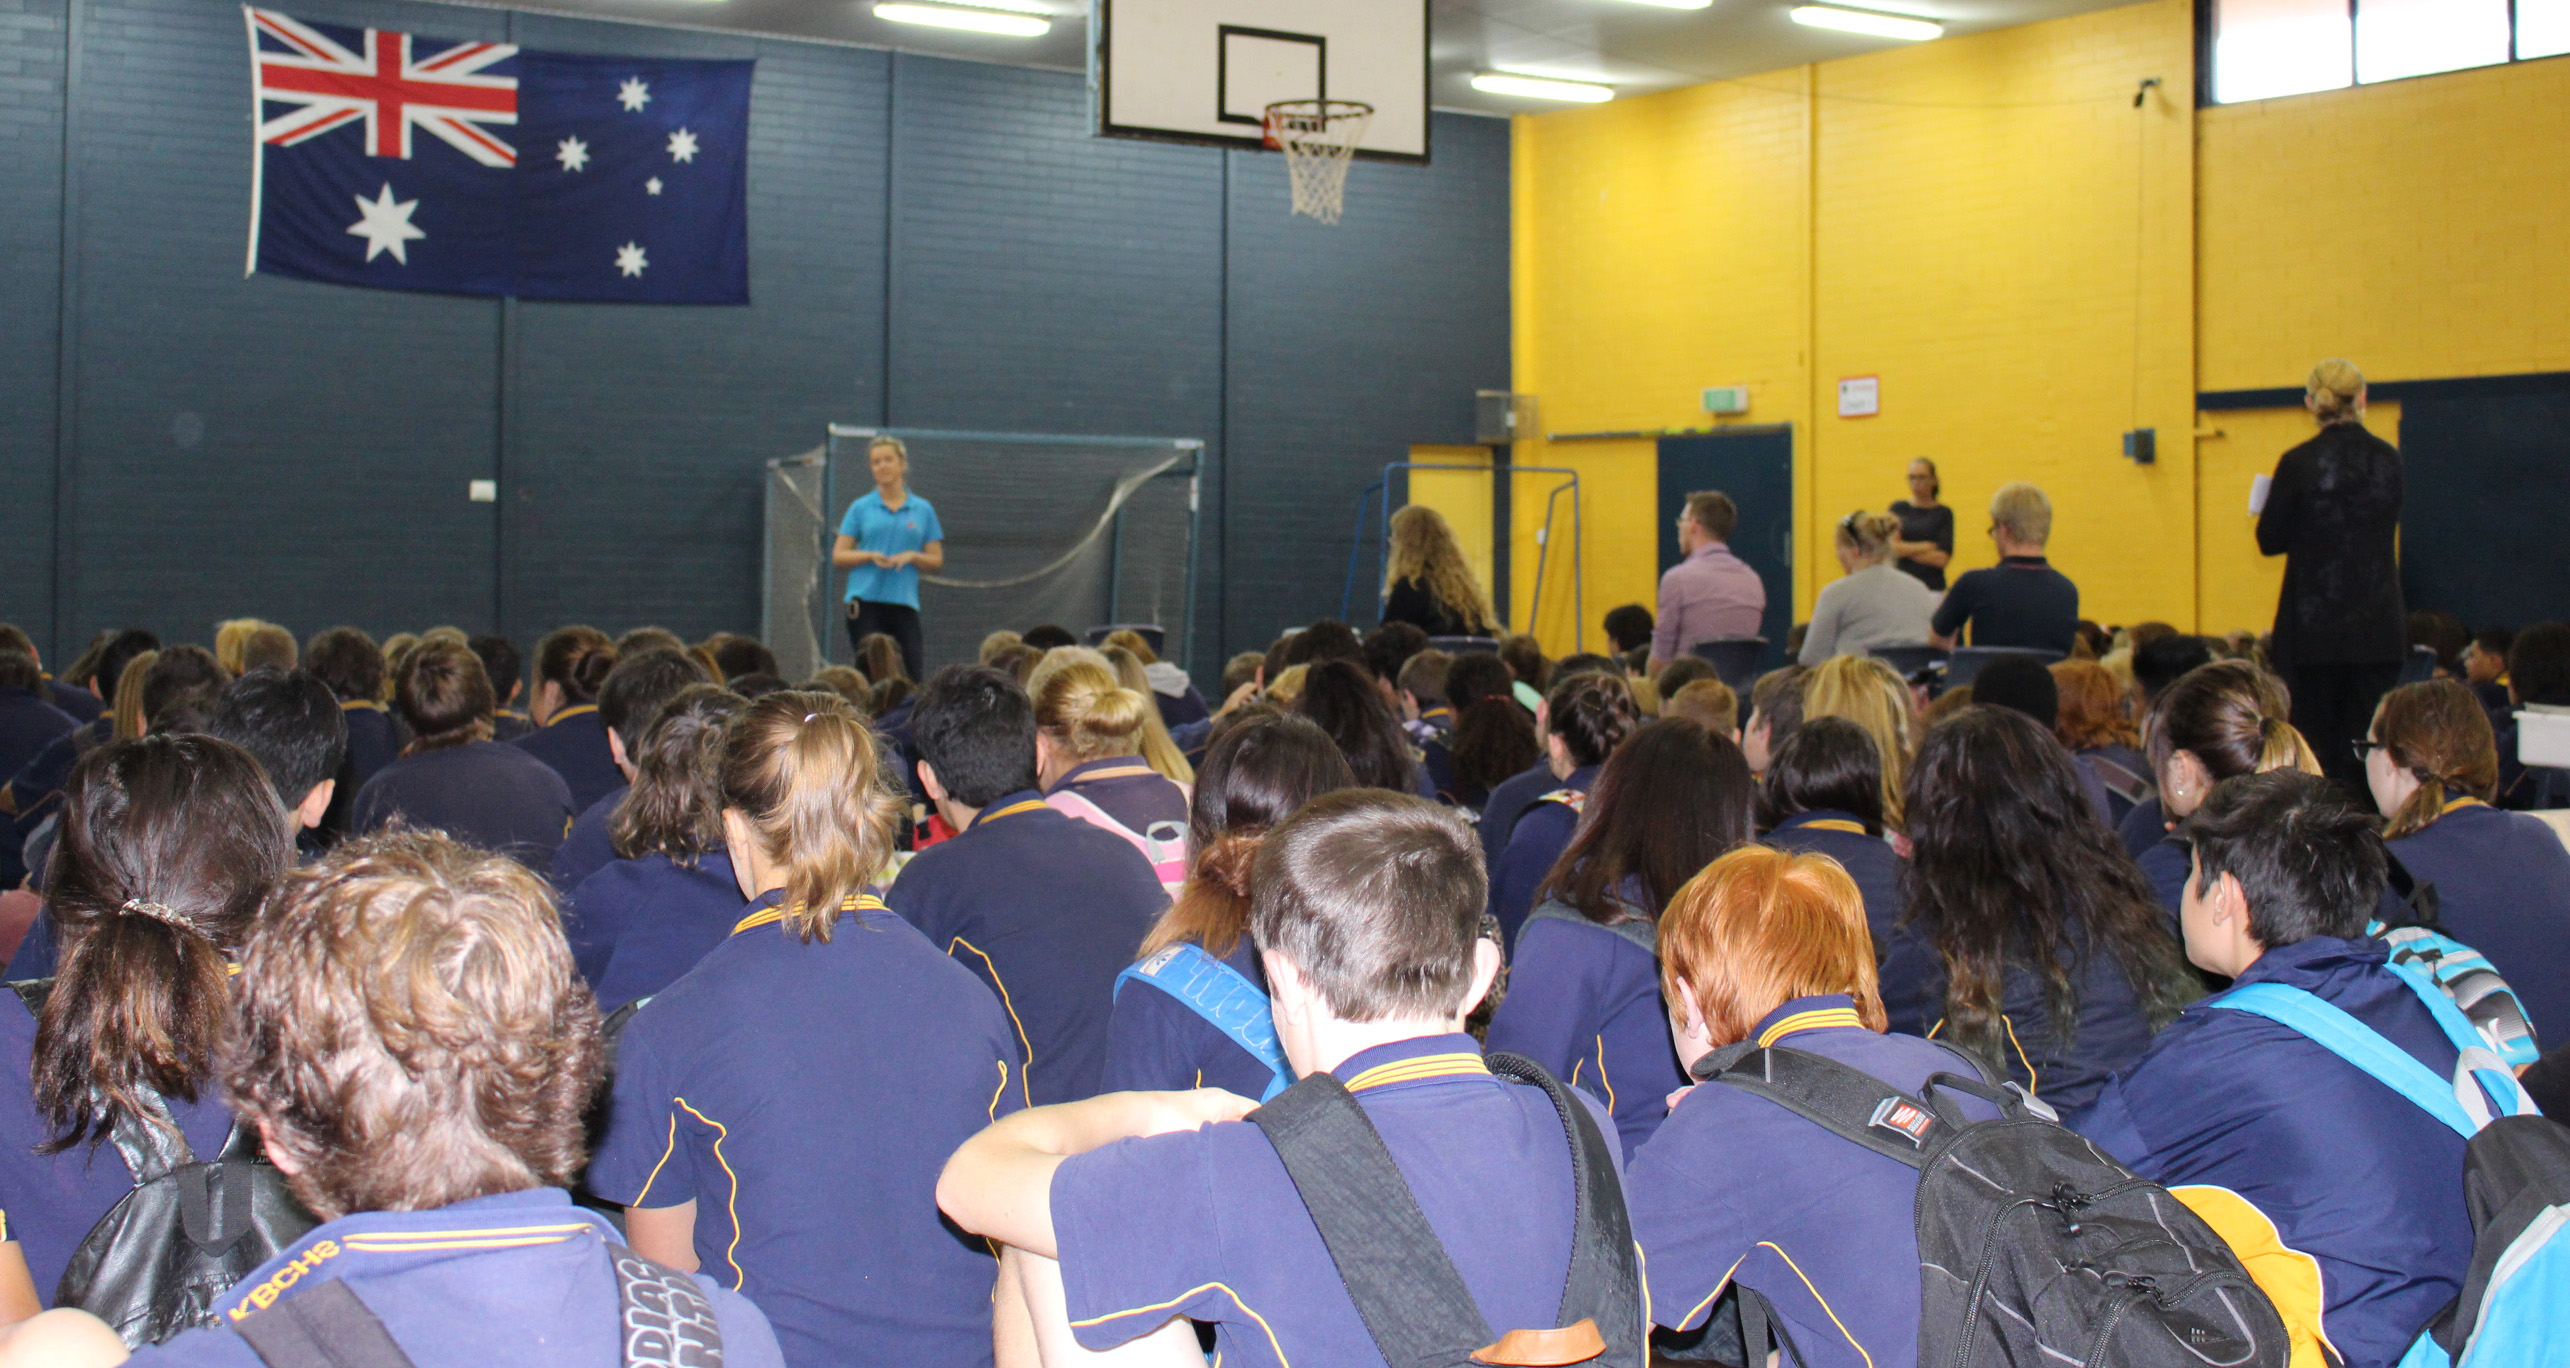 Beyond Blue's Bron presents to students at Kalgoorlie-Boulder Community High School in Kalgoorlie: WA.